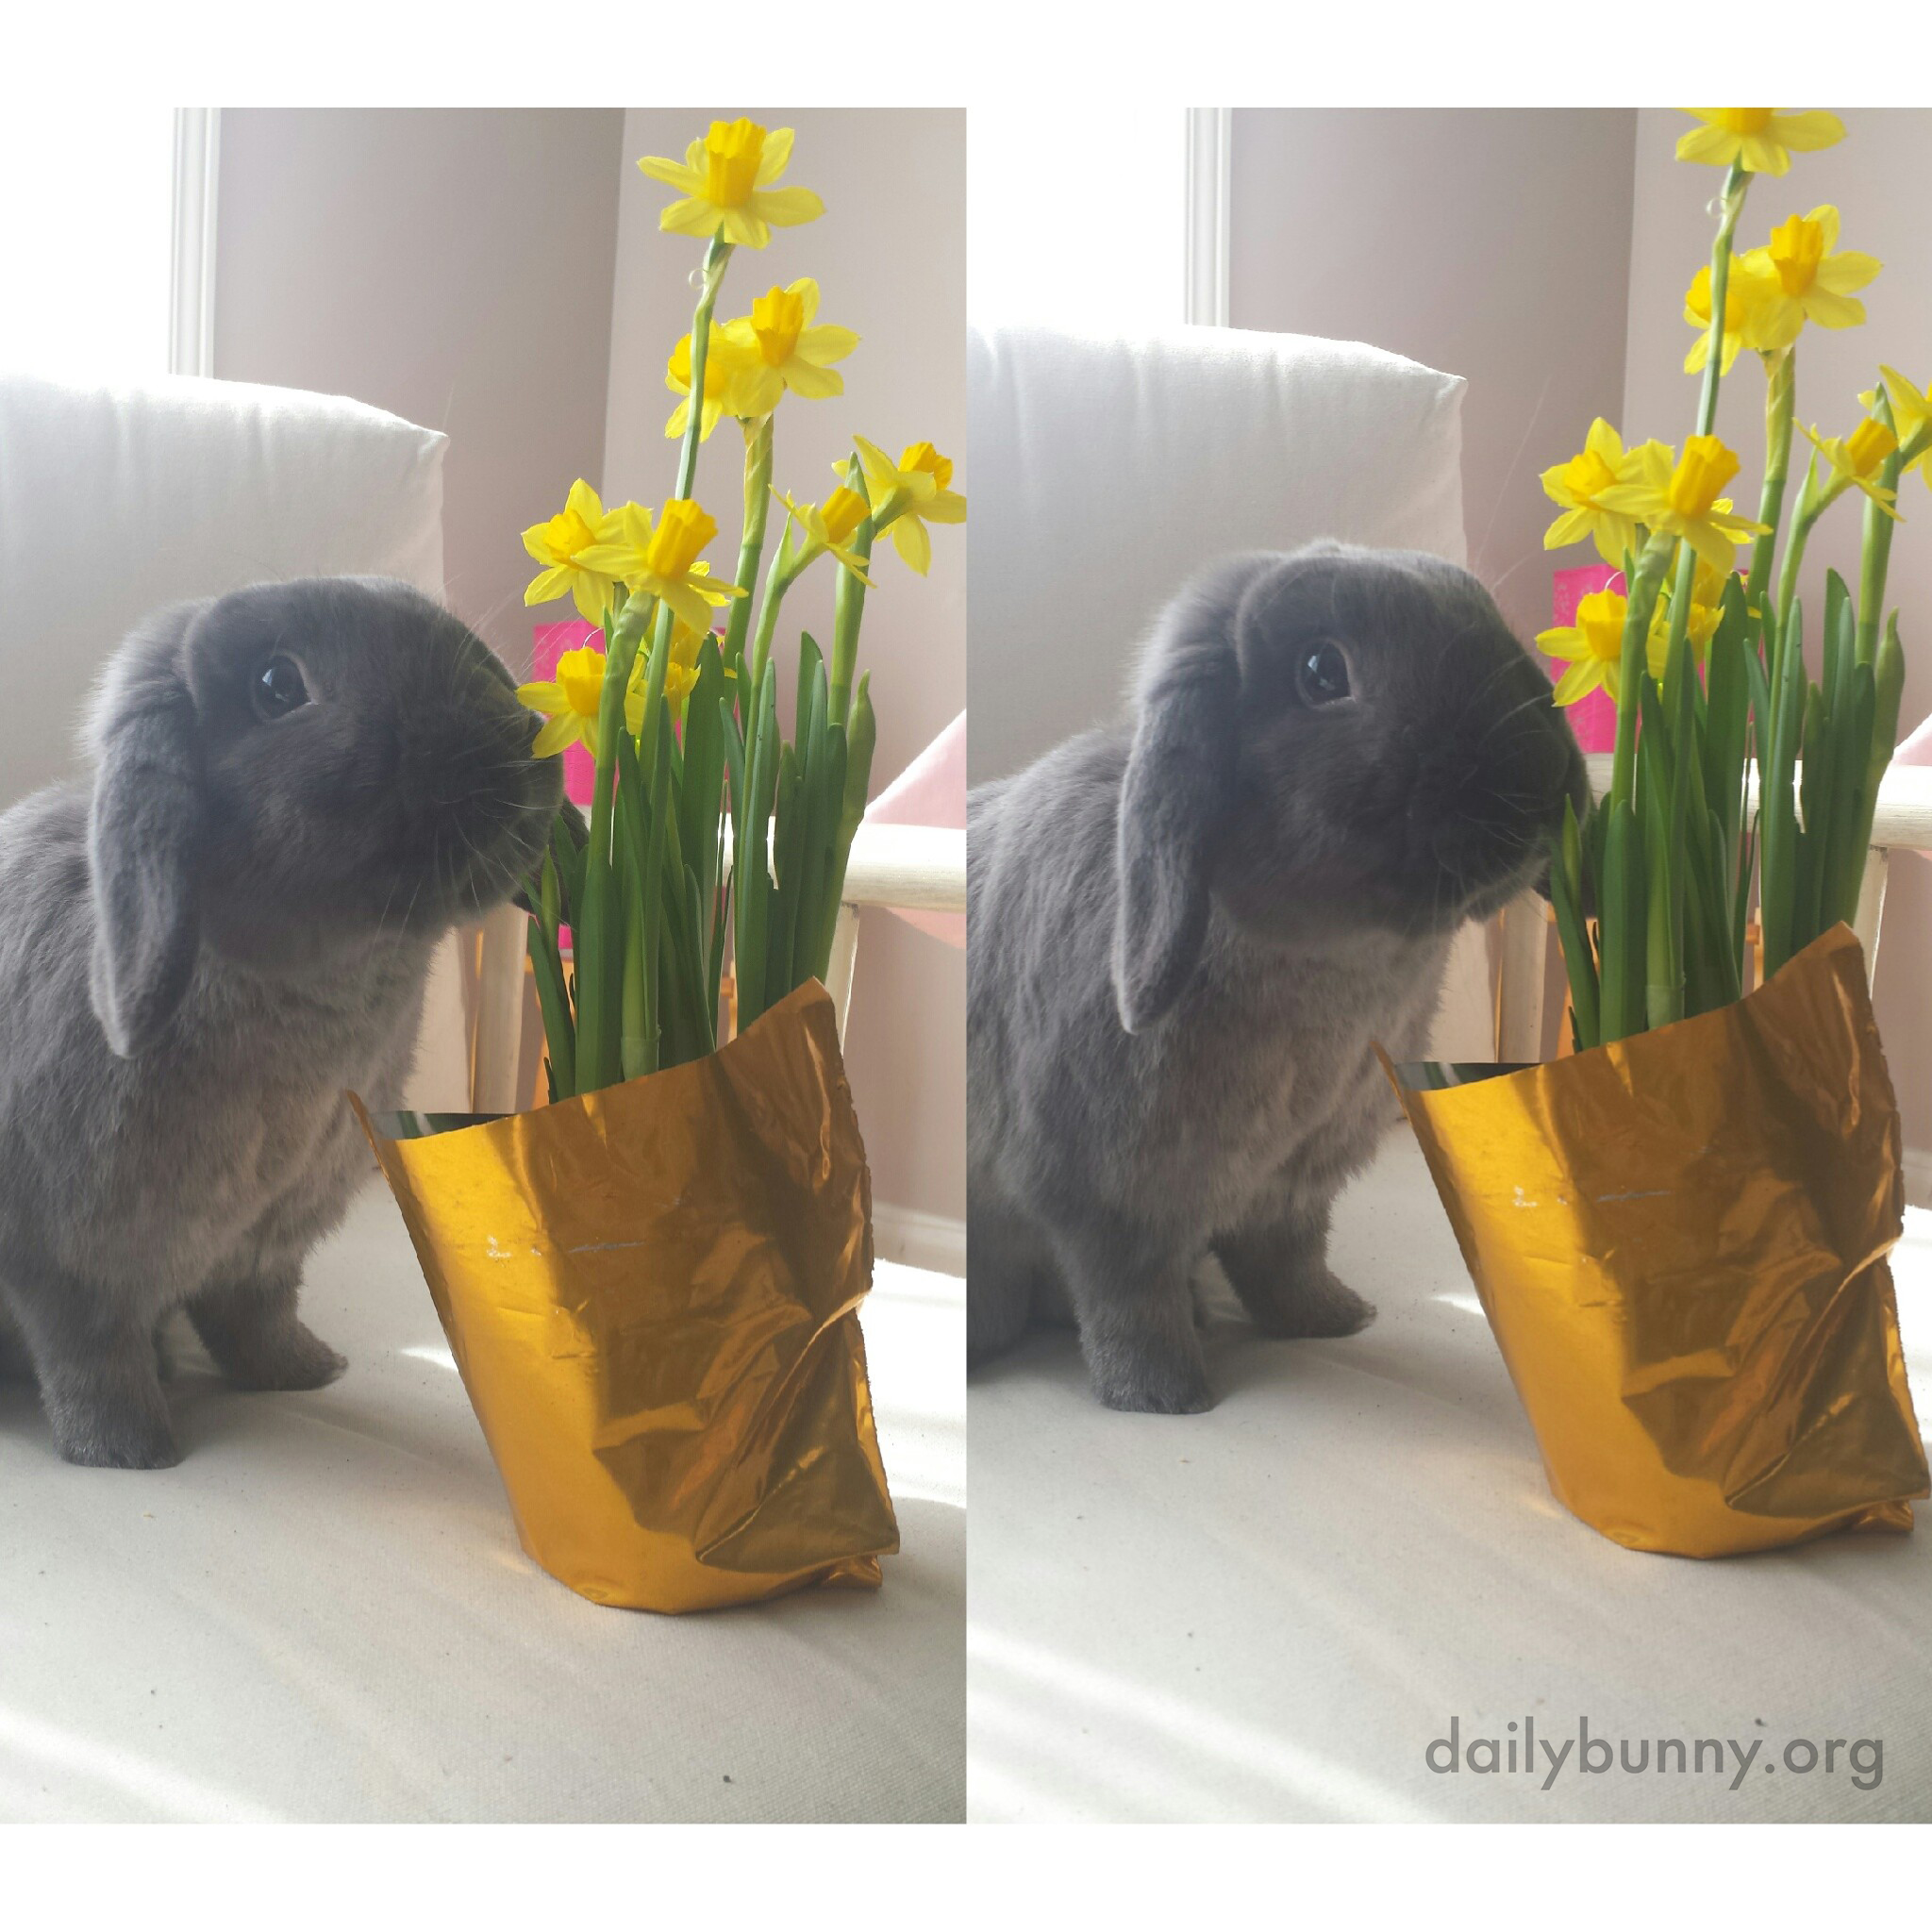 Bunny Thinks Flowers Are Nice, But They're Better When They're Edible